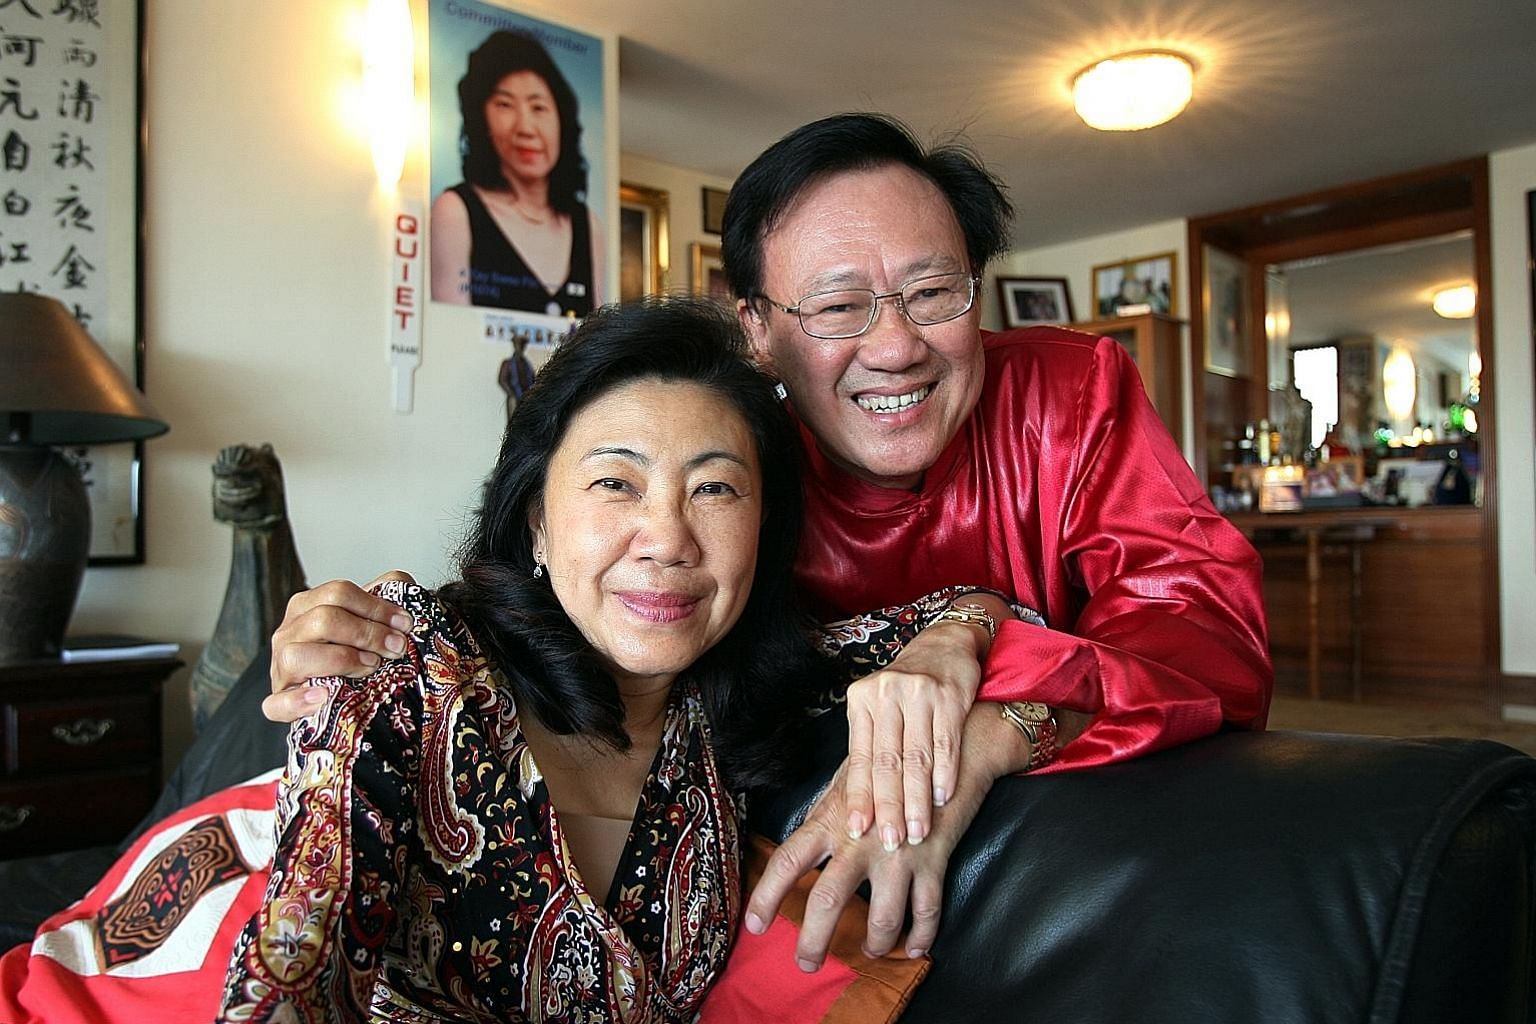 SA Tours' former boss Ng Kong Yeam and his mistress Kay Swee Pin in 2008. He meant to benefit her in his transfer of shares, the court has found.